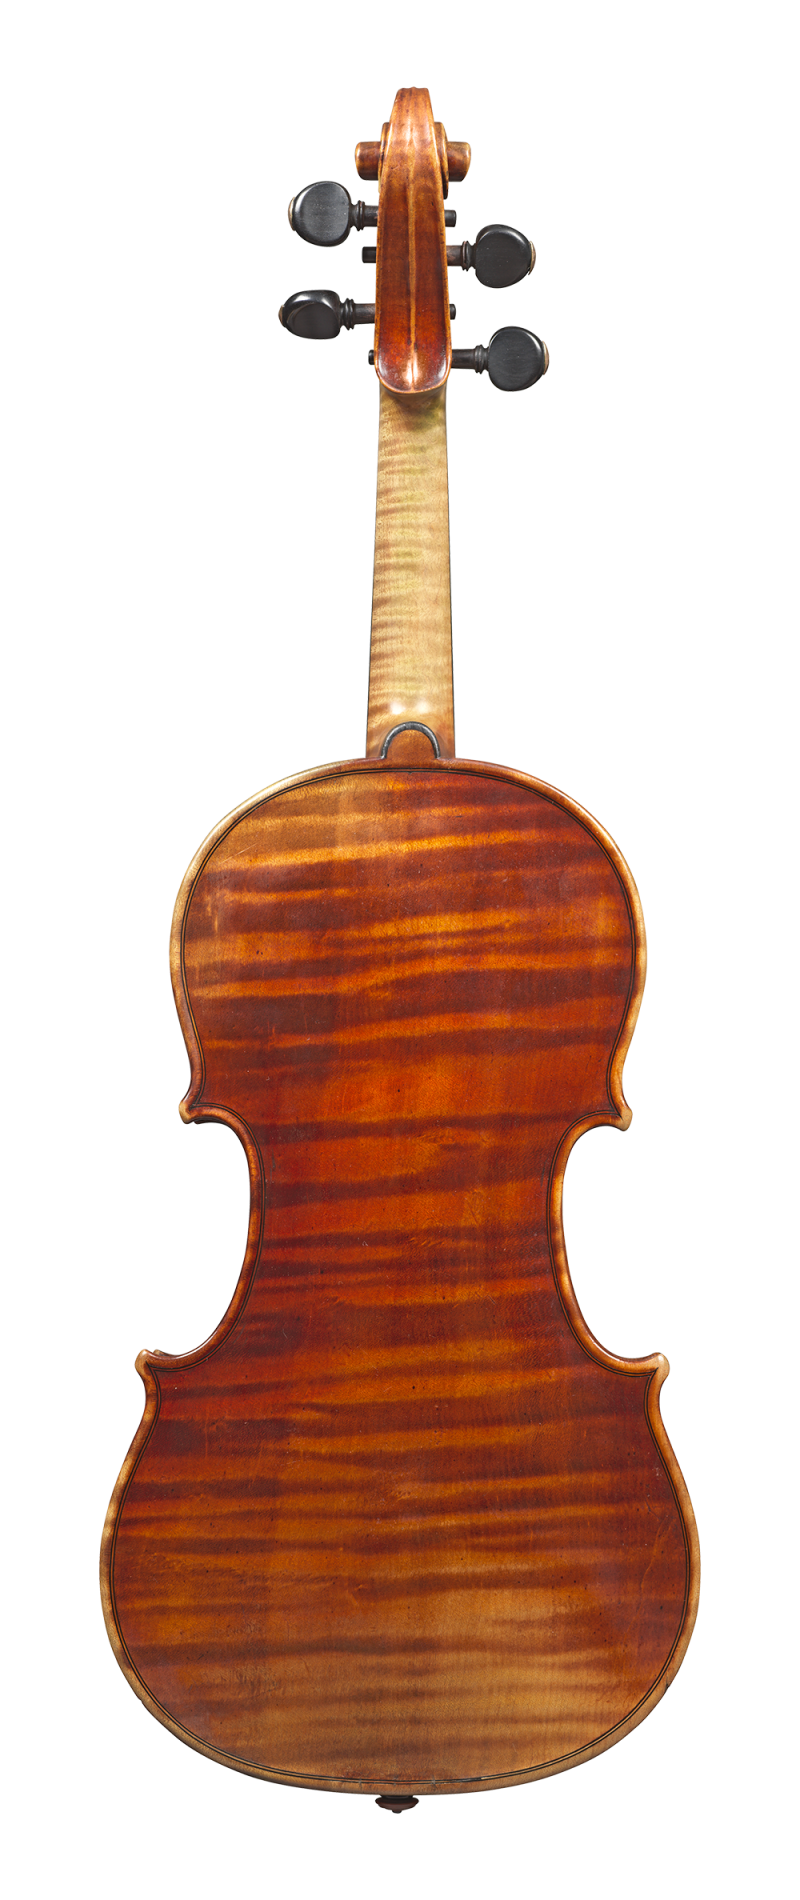 Back of a violin by Auguste Sébastien Philippe Bernardel, Paris, 1828. This violin has a very big and nuanced sound. Its warmth and easy response are striking.